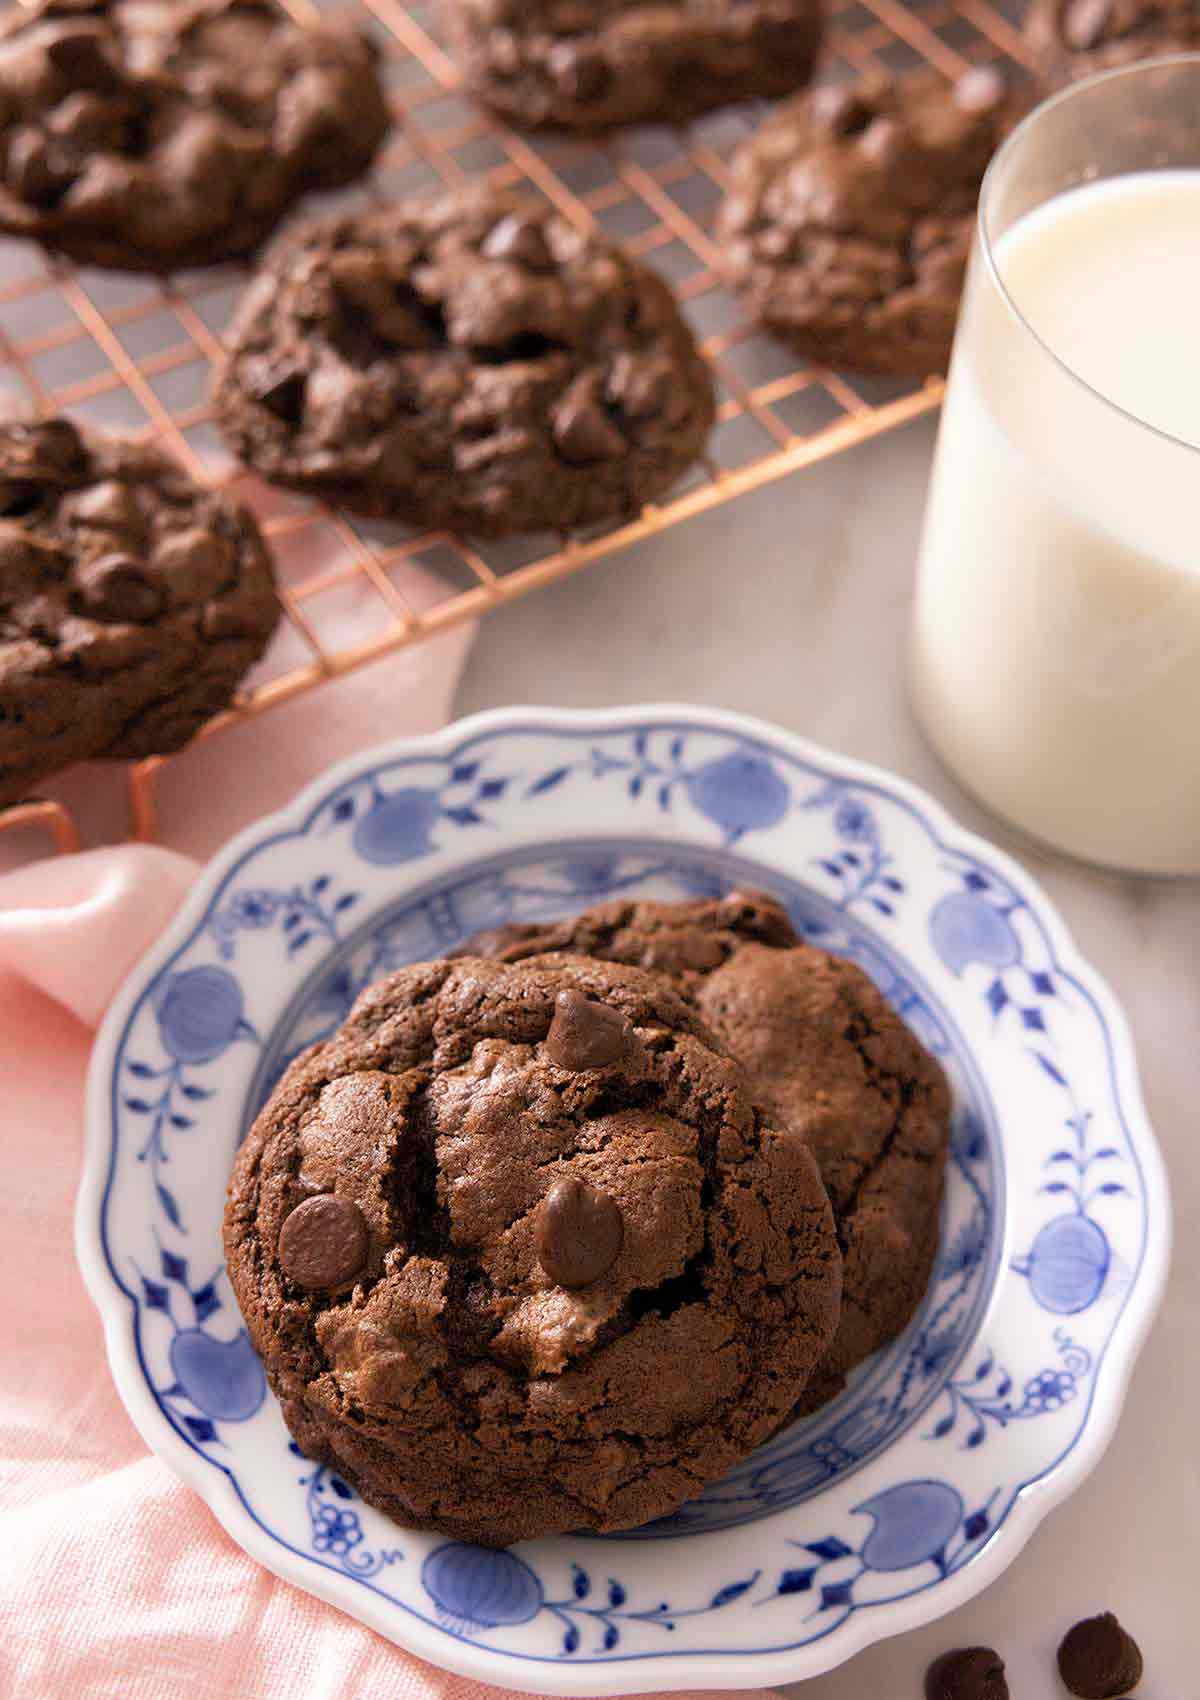 Two double chocolate chip cookies on a plate by a glass of milk with a cooling rack with more cookies in the background.